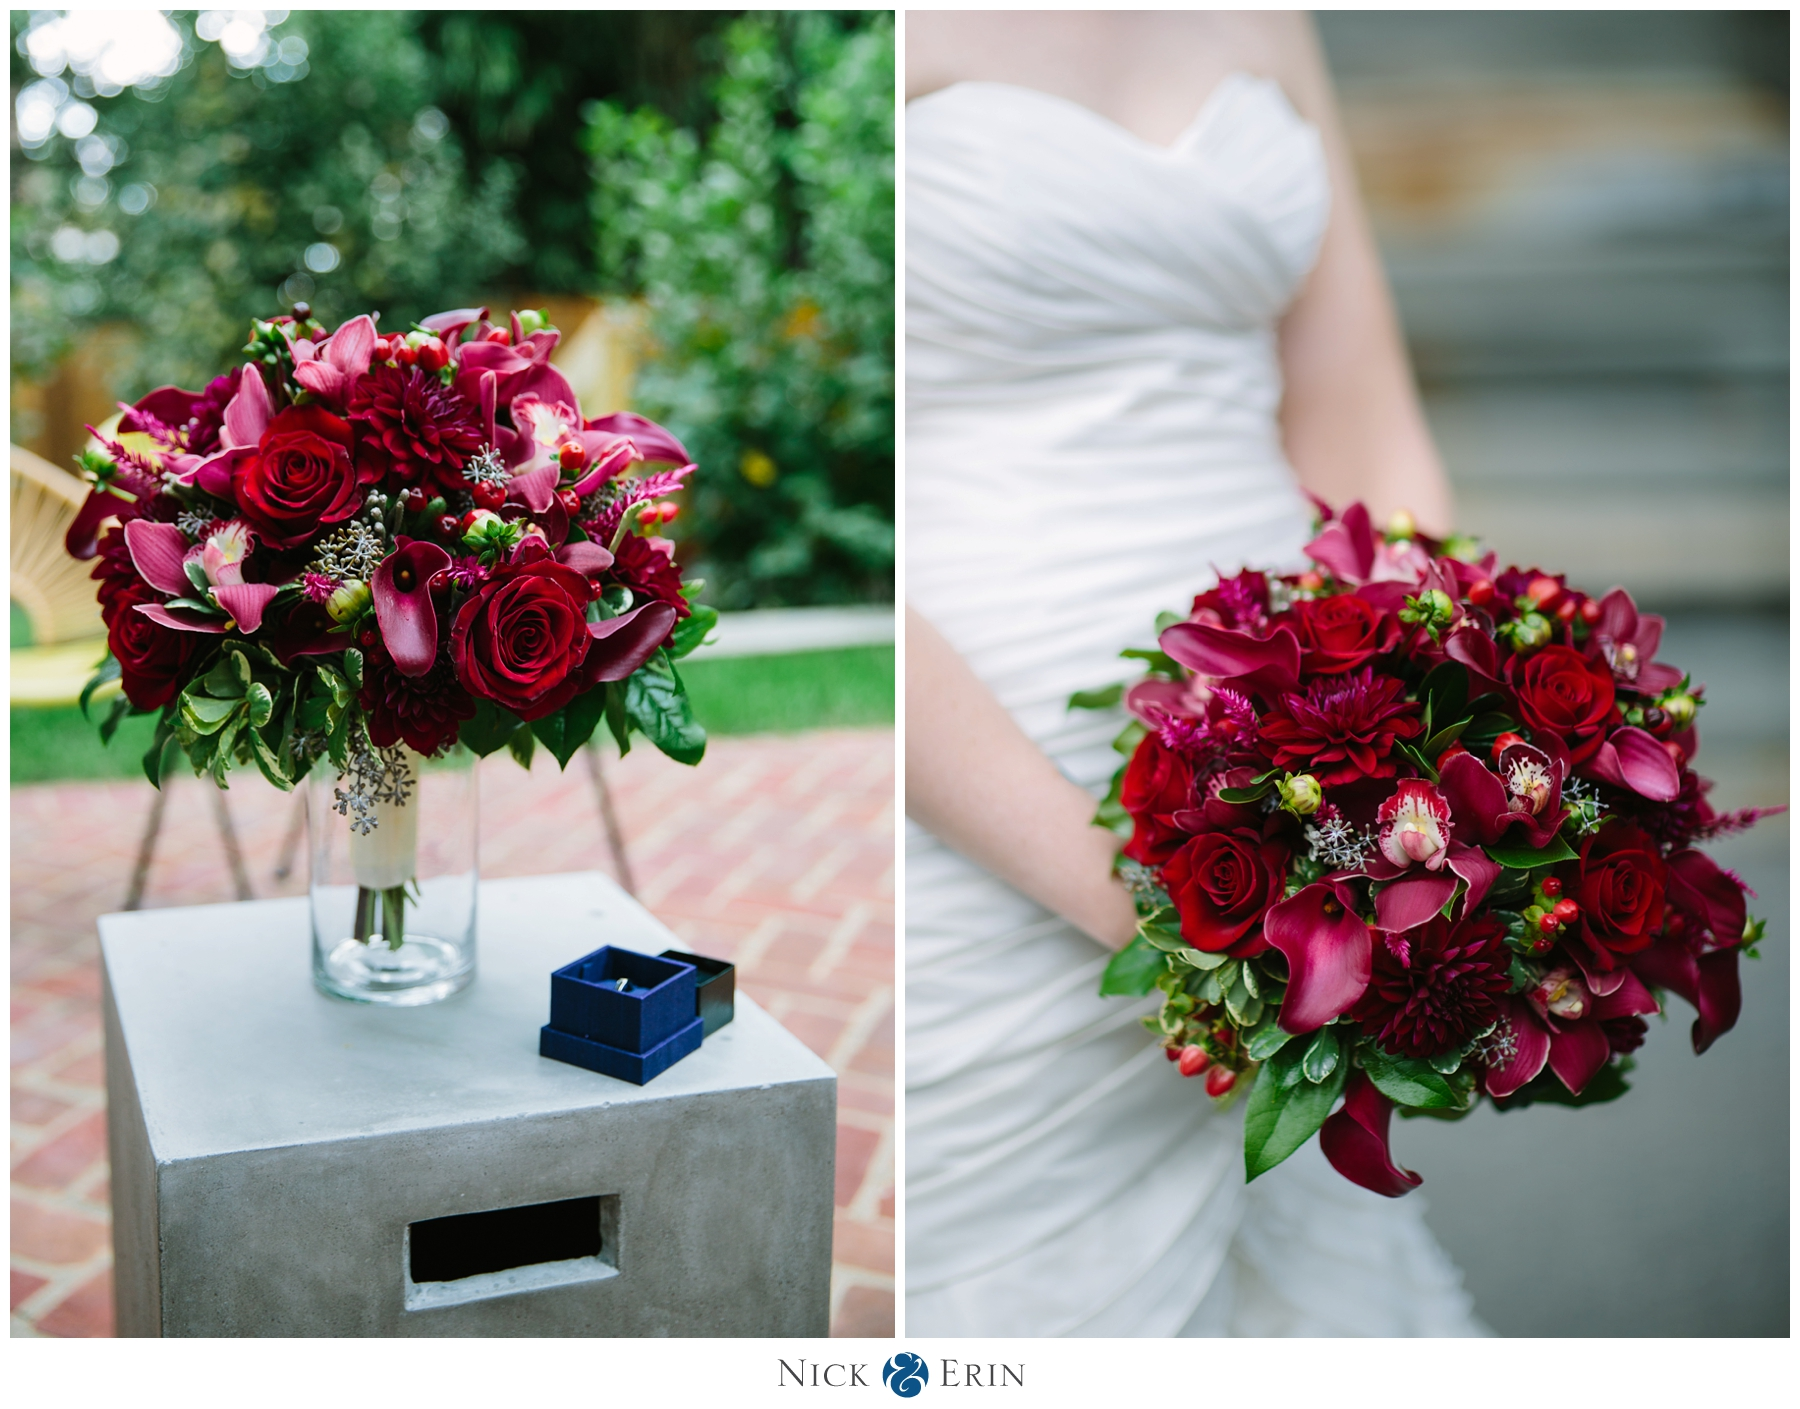 donner_photography_washington-dc-wedding_alanna-josh_0018a